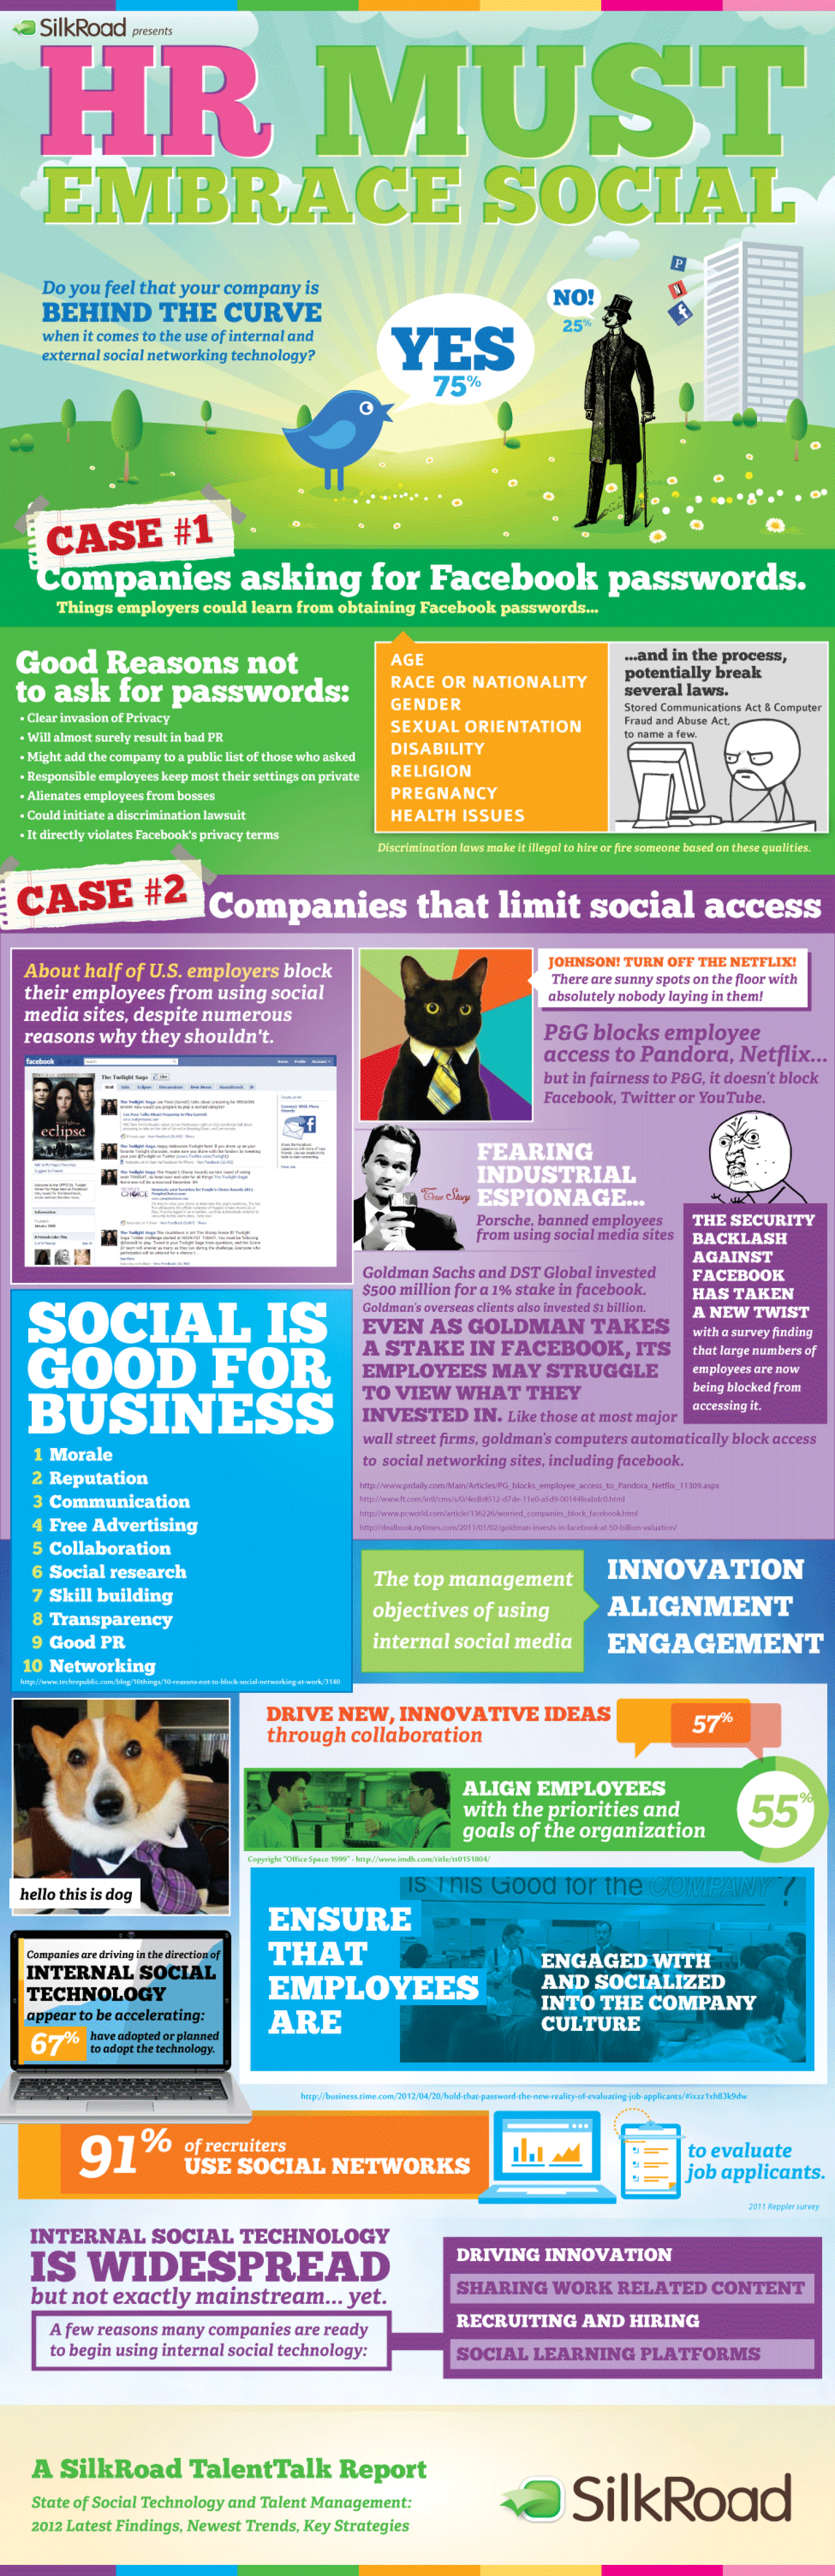 Embracing Social Technology: A Call to Action Infographic